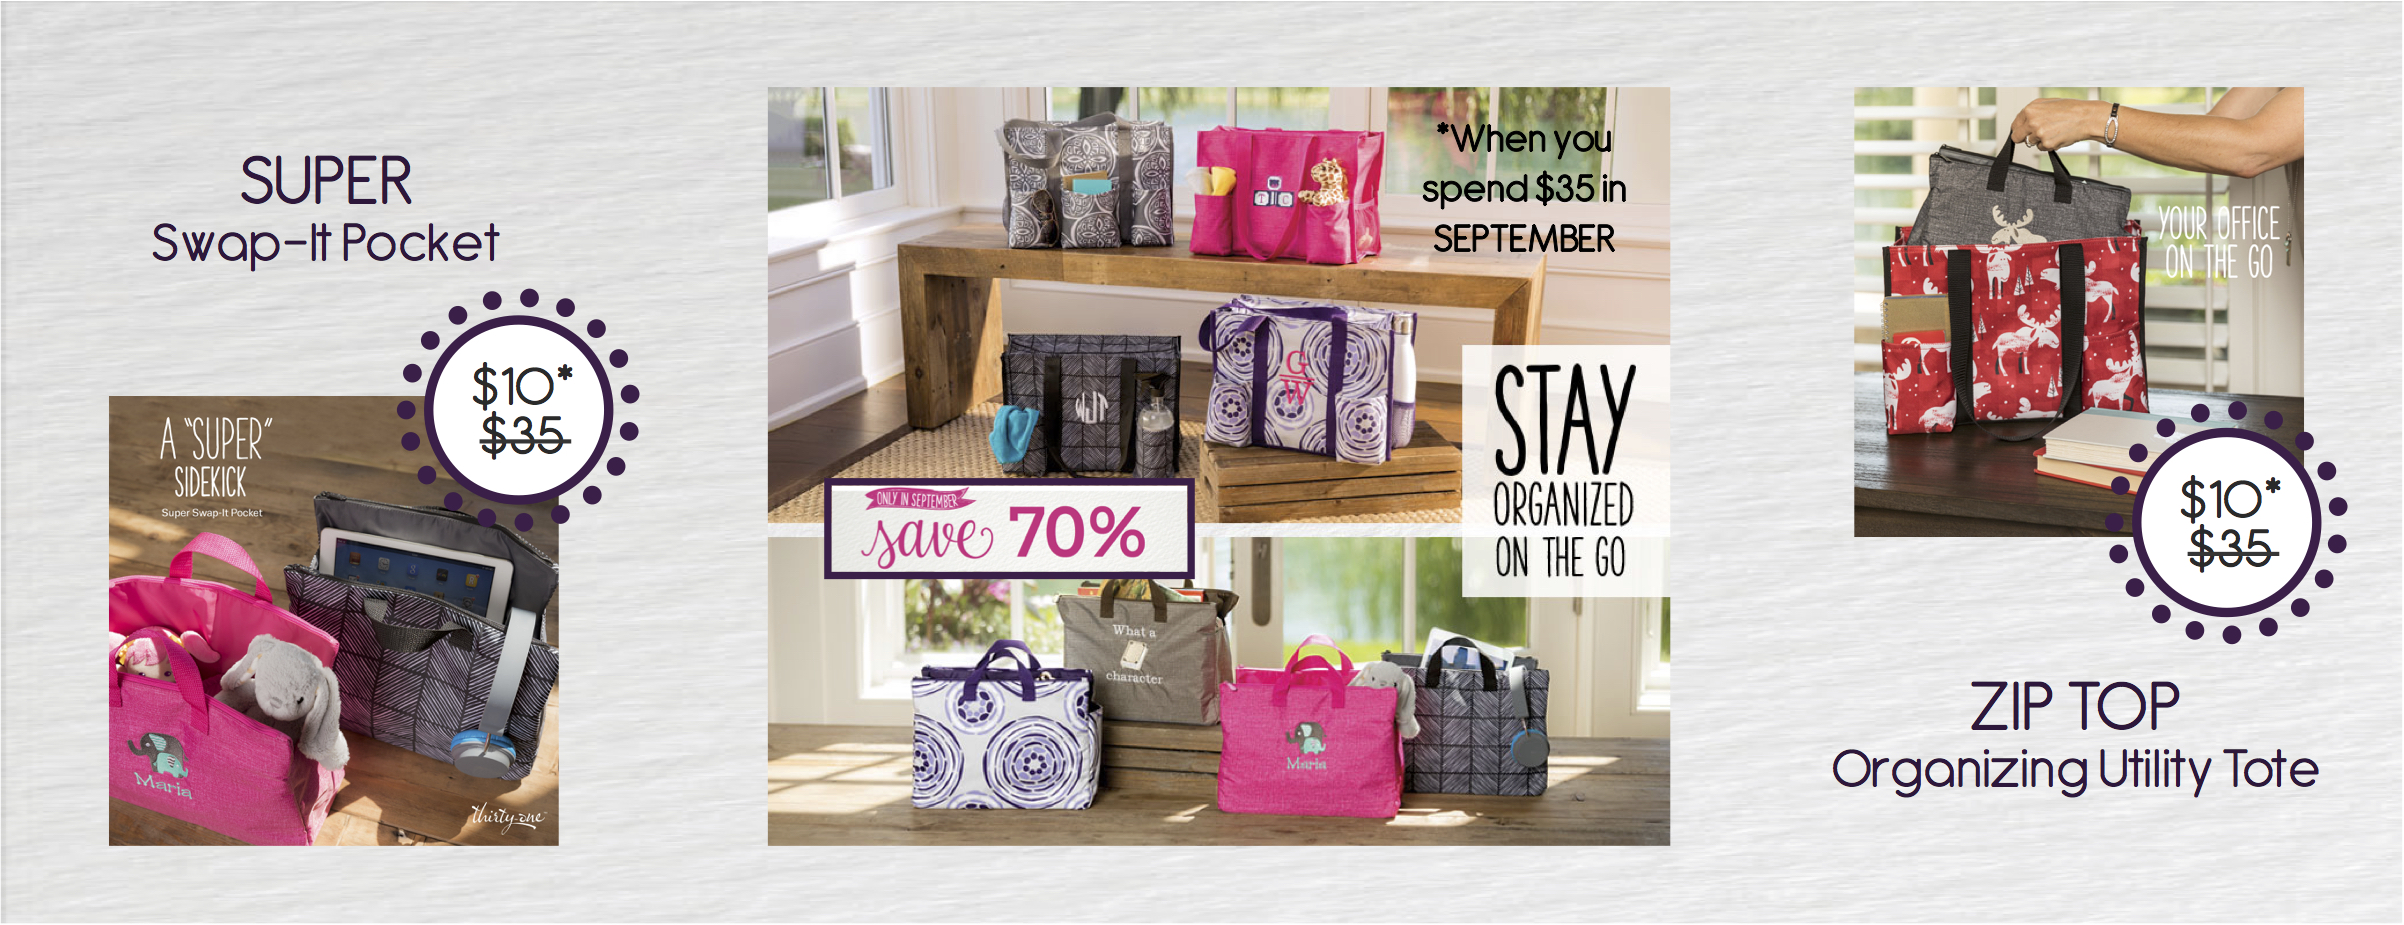 Thirty one november customer special 2014 - Thirty One Gifts September Special